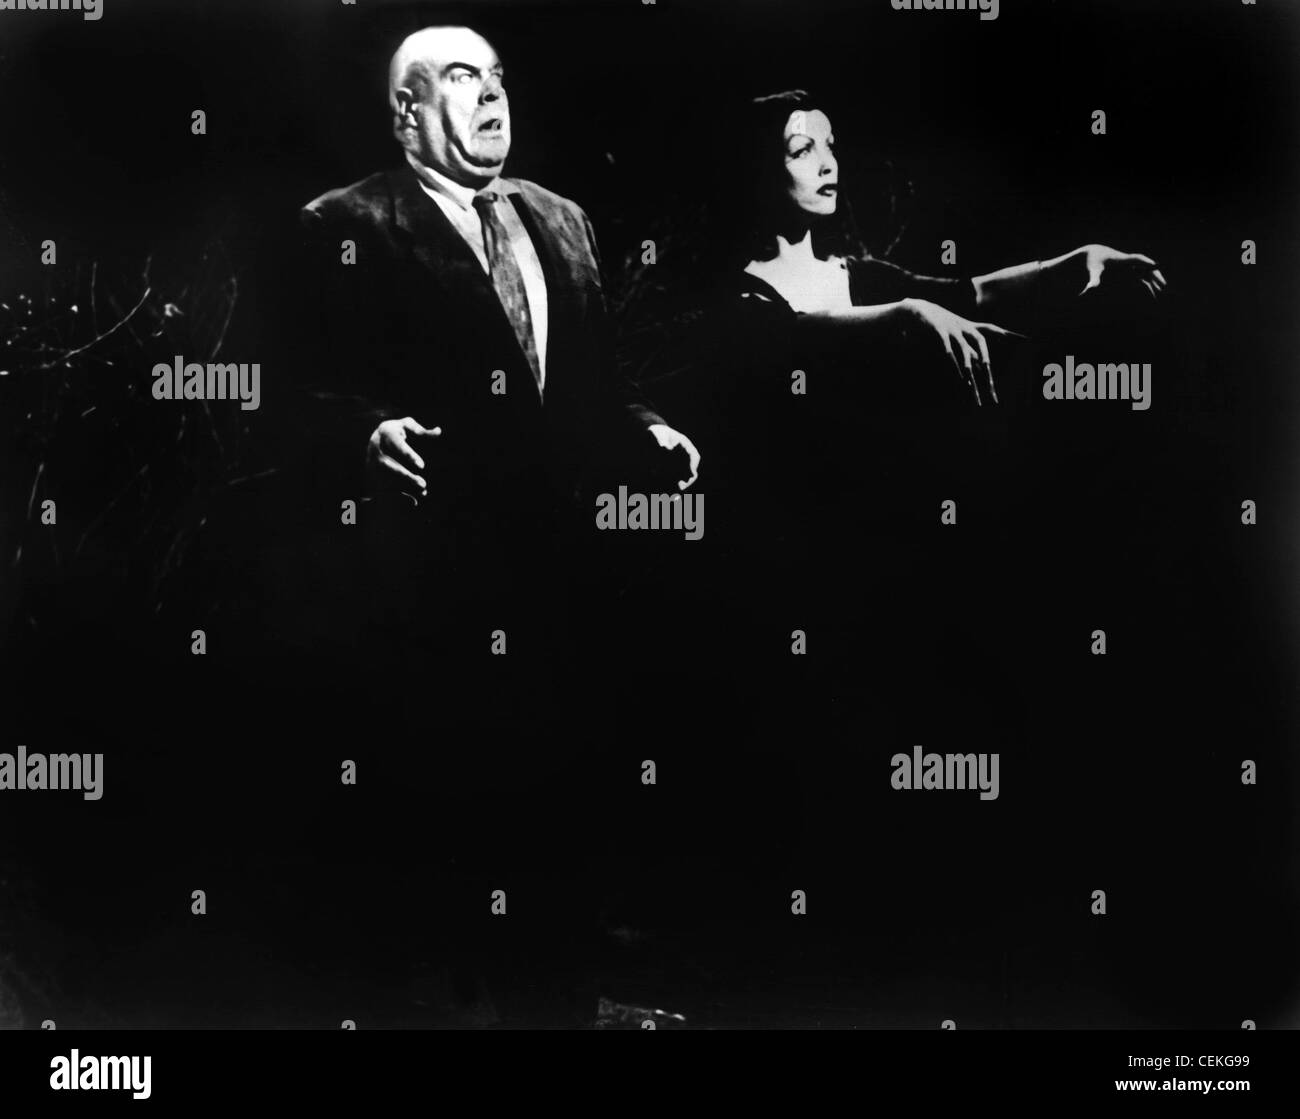 PLAN 9 FROM OUTER SPACE (1959) TOR JOHNSON VAMPIRA EDWARD D. WOOD JR. (DIR) 007 MOVIESTORE COLLECTION LTD - Stock Image